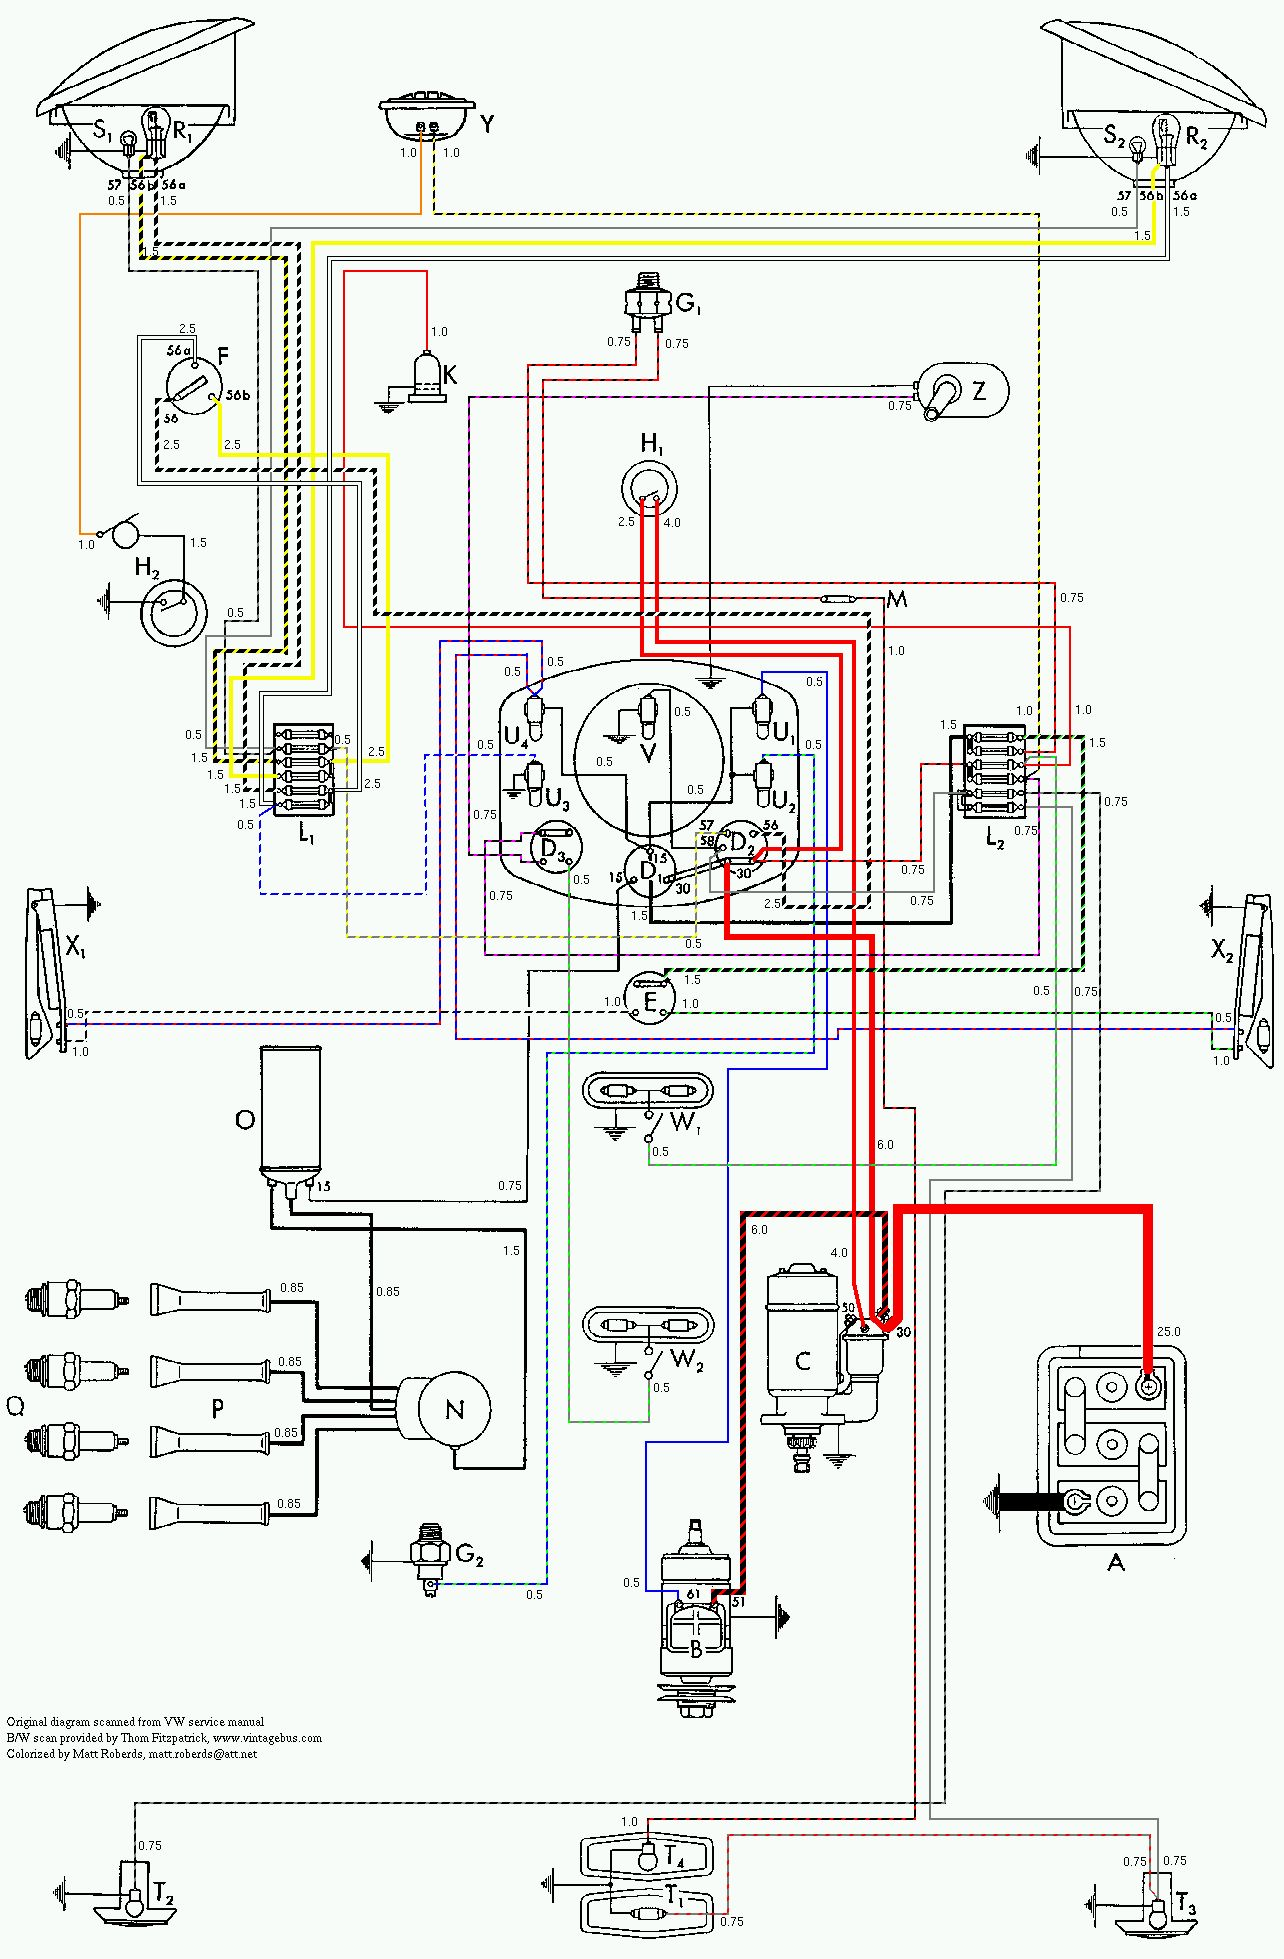 bus 53 color vintagebus com vw bus (and other) wiring diagrams vw turn signal wiring diagram at creativeand.co